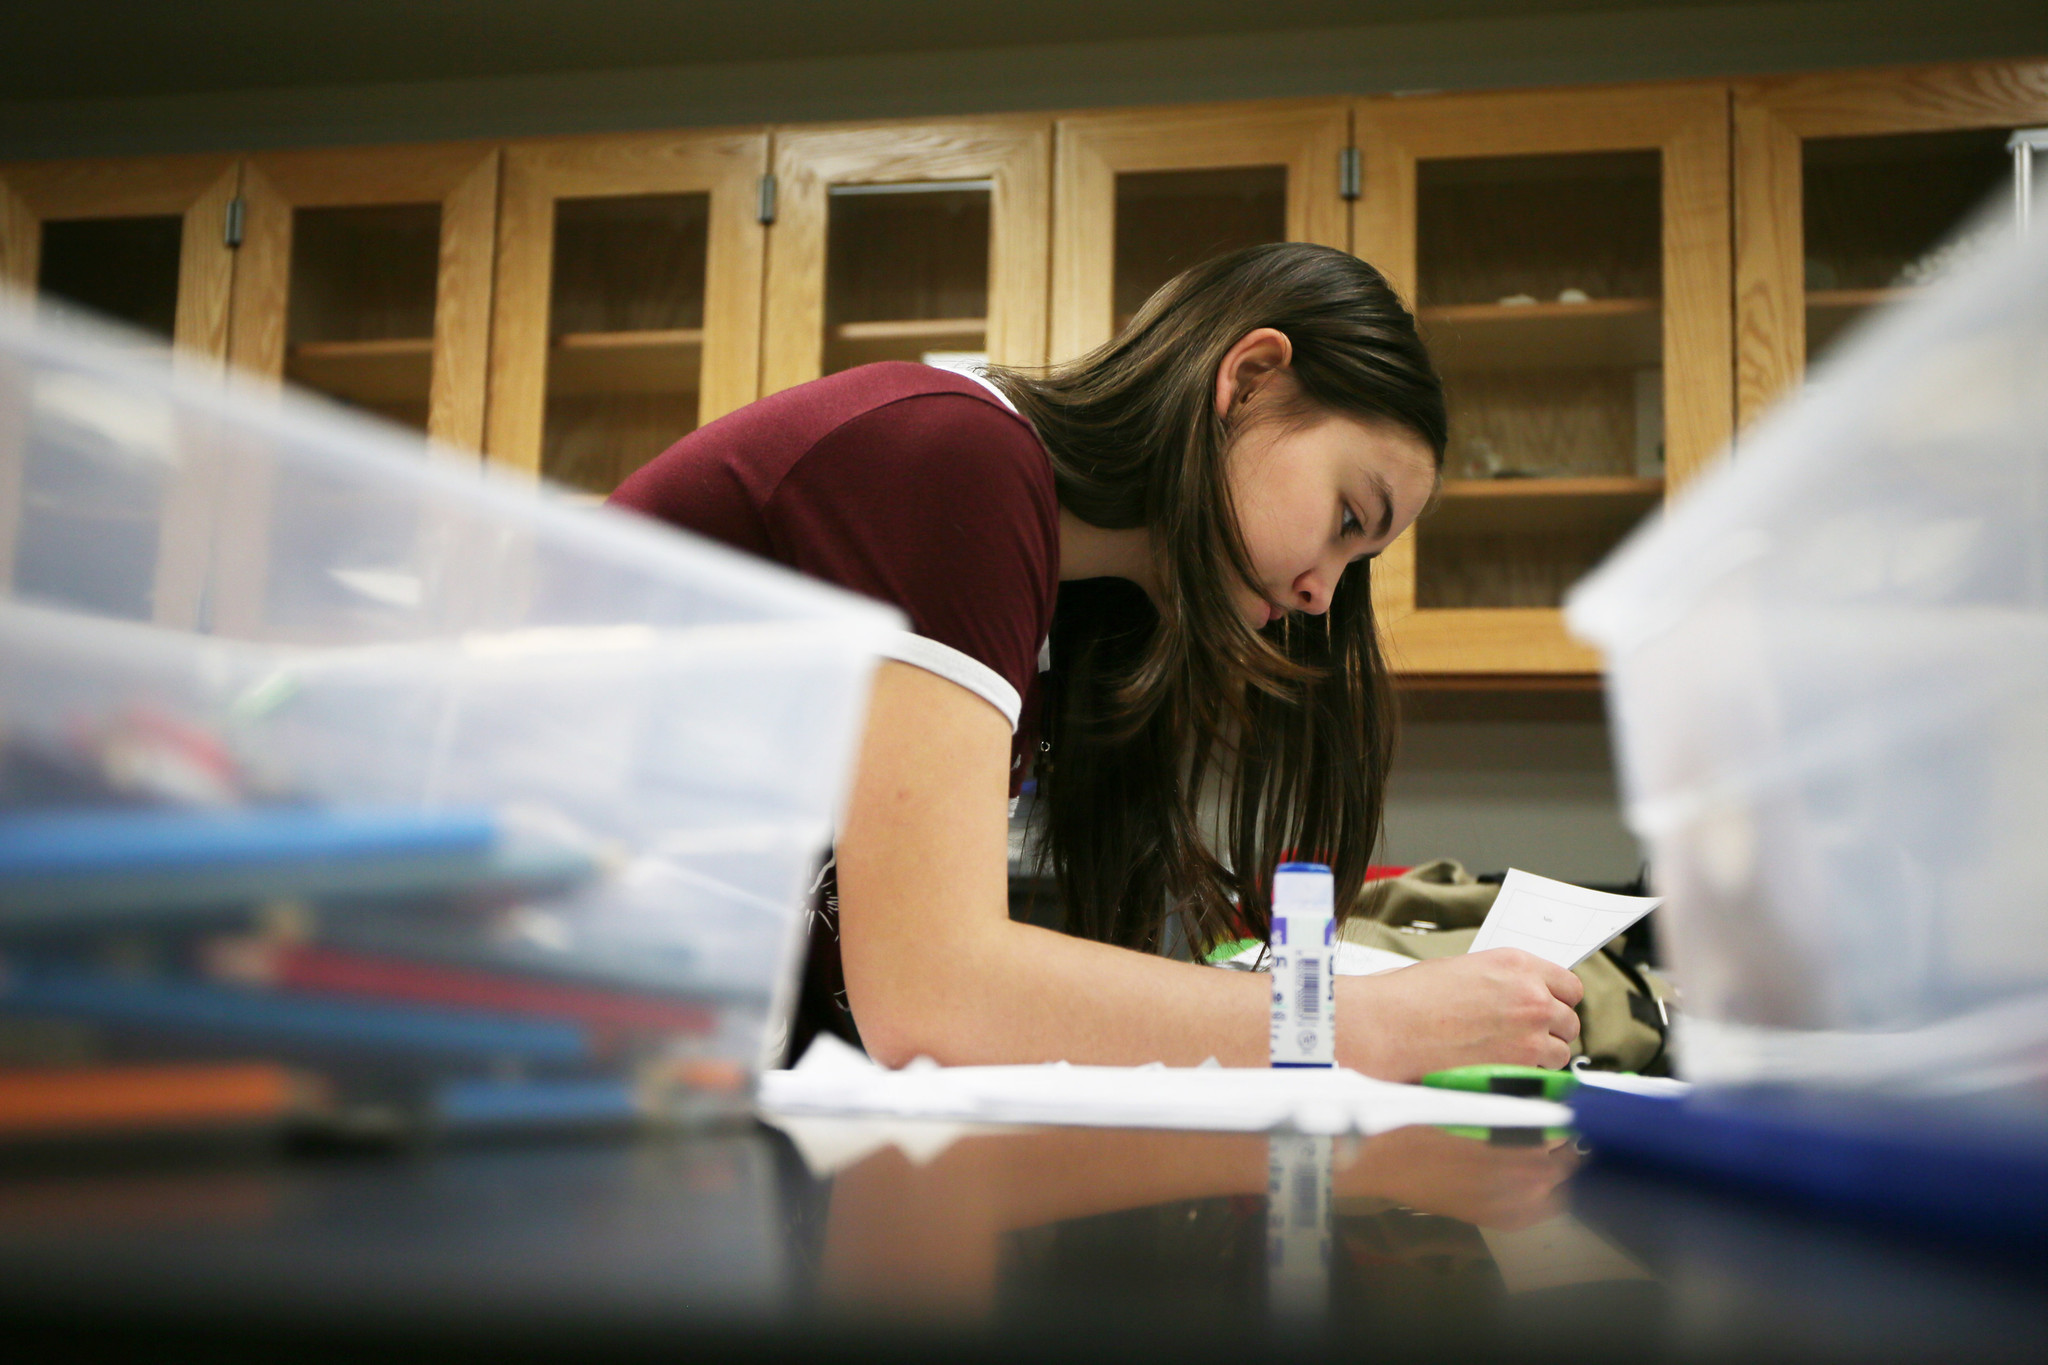 The Examined Life >> Tribune analysis: College prep courses not preparing kids